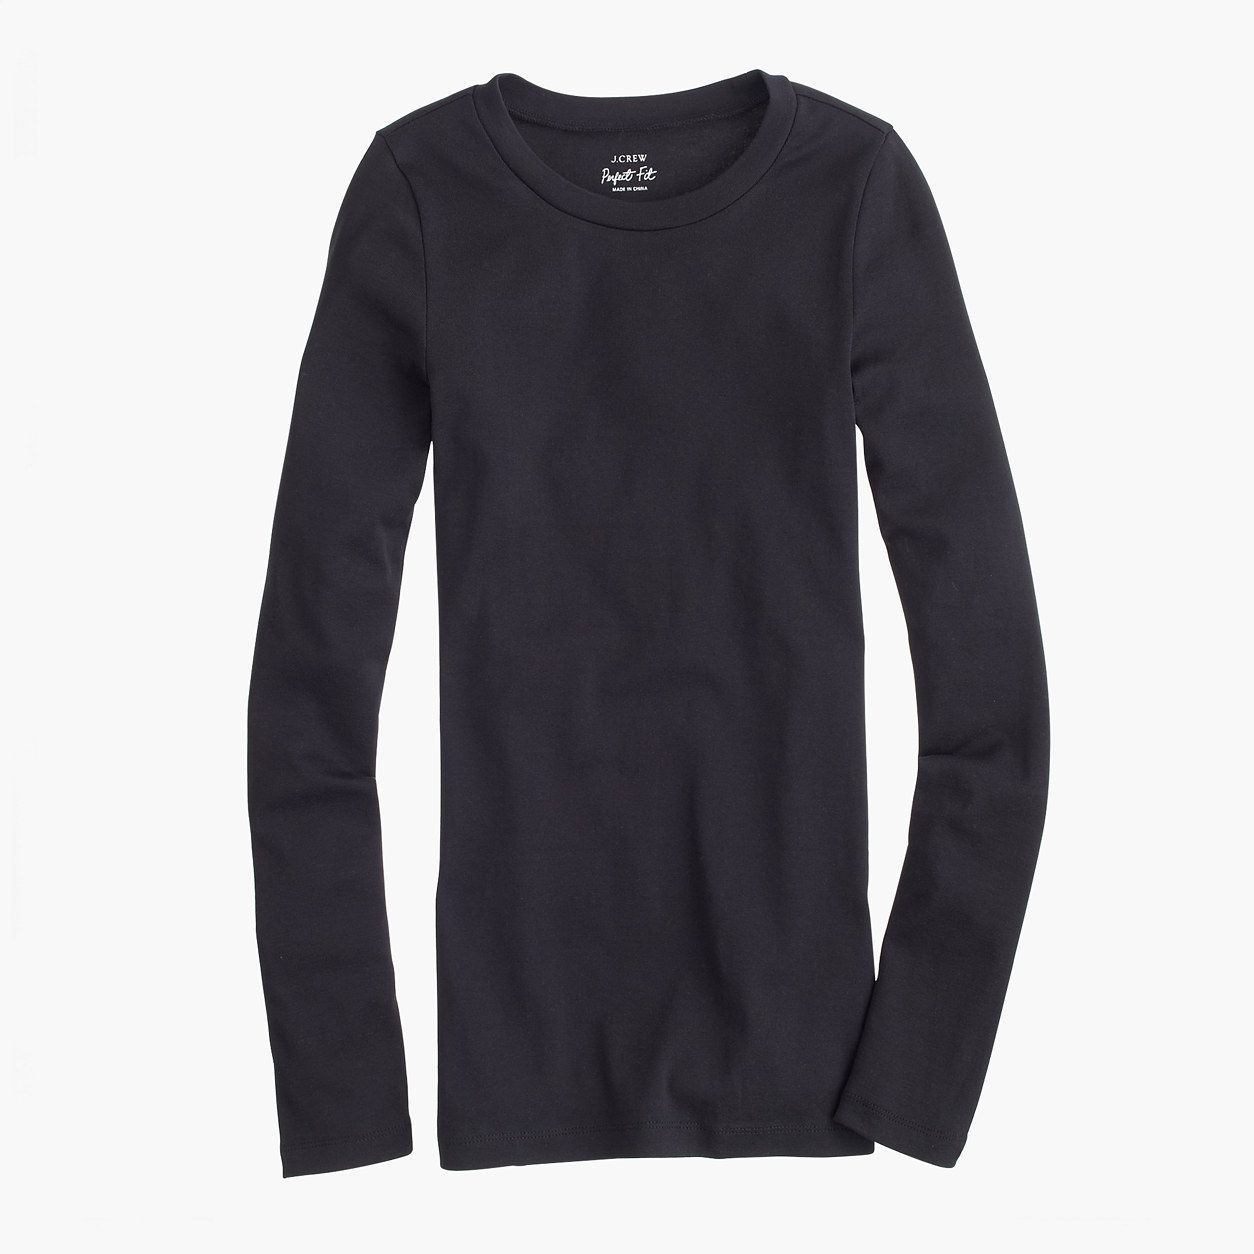 J.Crew Womens Petite Perfect-Fit Long-Sleeve T-Shirt (Size XXS Petite)